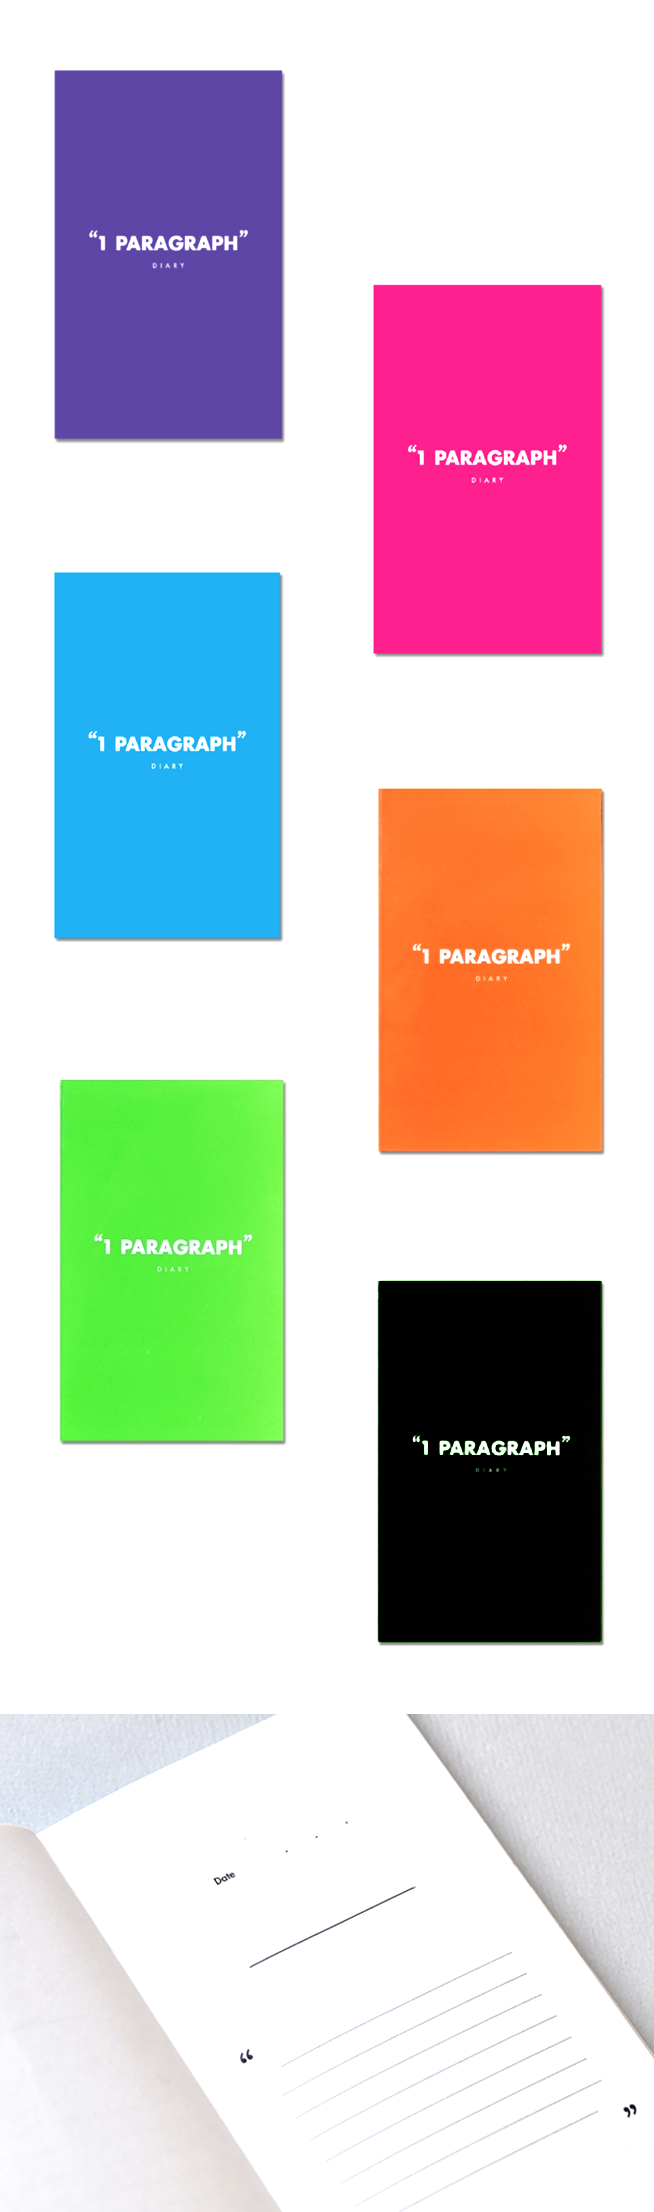 The Black One Paragraph Notebook is an ideal diary, journal, or log! Containing a total of 128 pages of recycled paper with 64 paragraph entries, this notebook works for notes in school or quick ideas on the go as well! Additional colors in Apple Green, Blue, Magenta, Purple & Urban Orange are now available at mochithings.com!